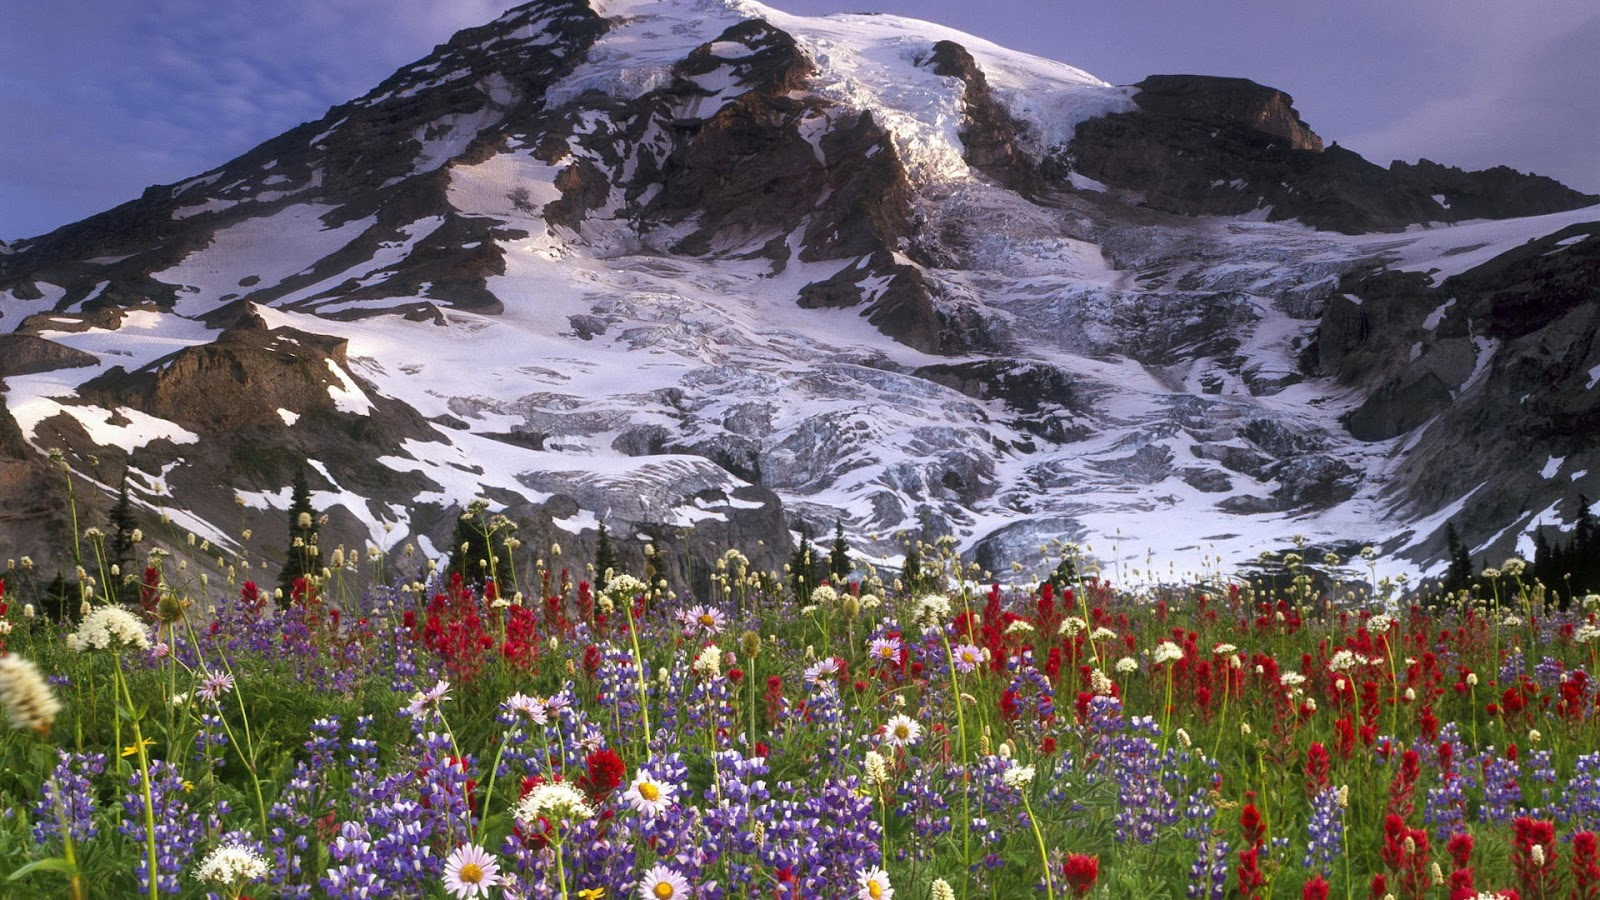 Flowers Ice Mountains Full Hd Nature Background Wallpaper - Laptop Wallpaper Hd Flowers - HD Wallpaper